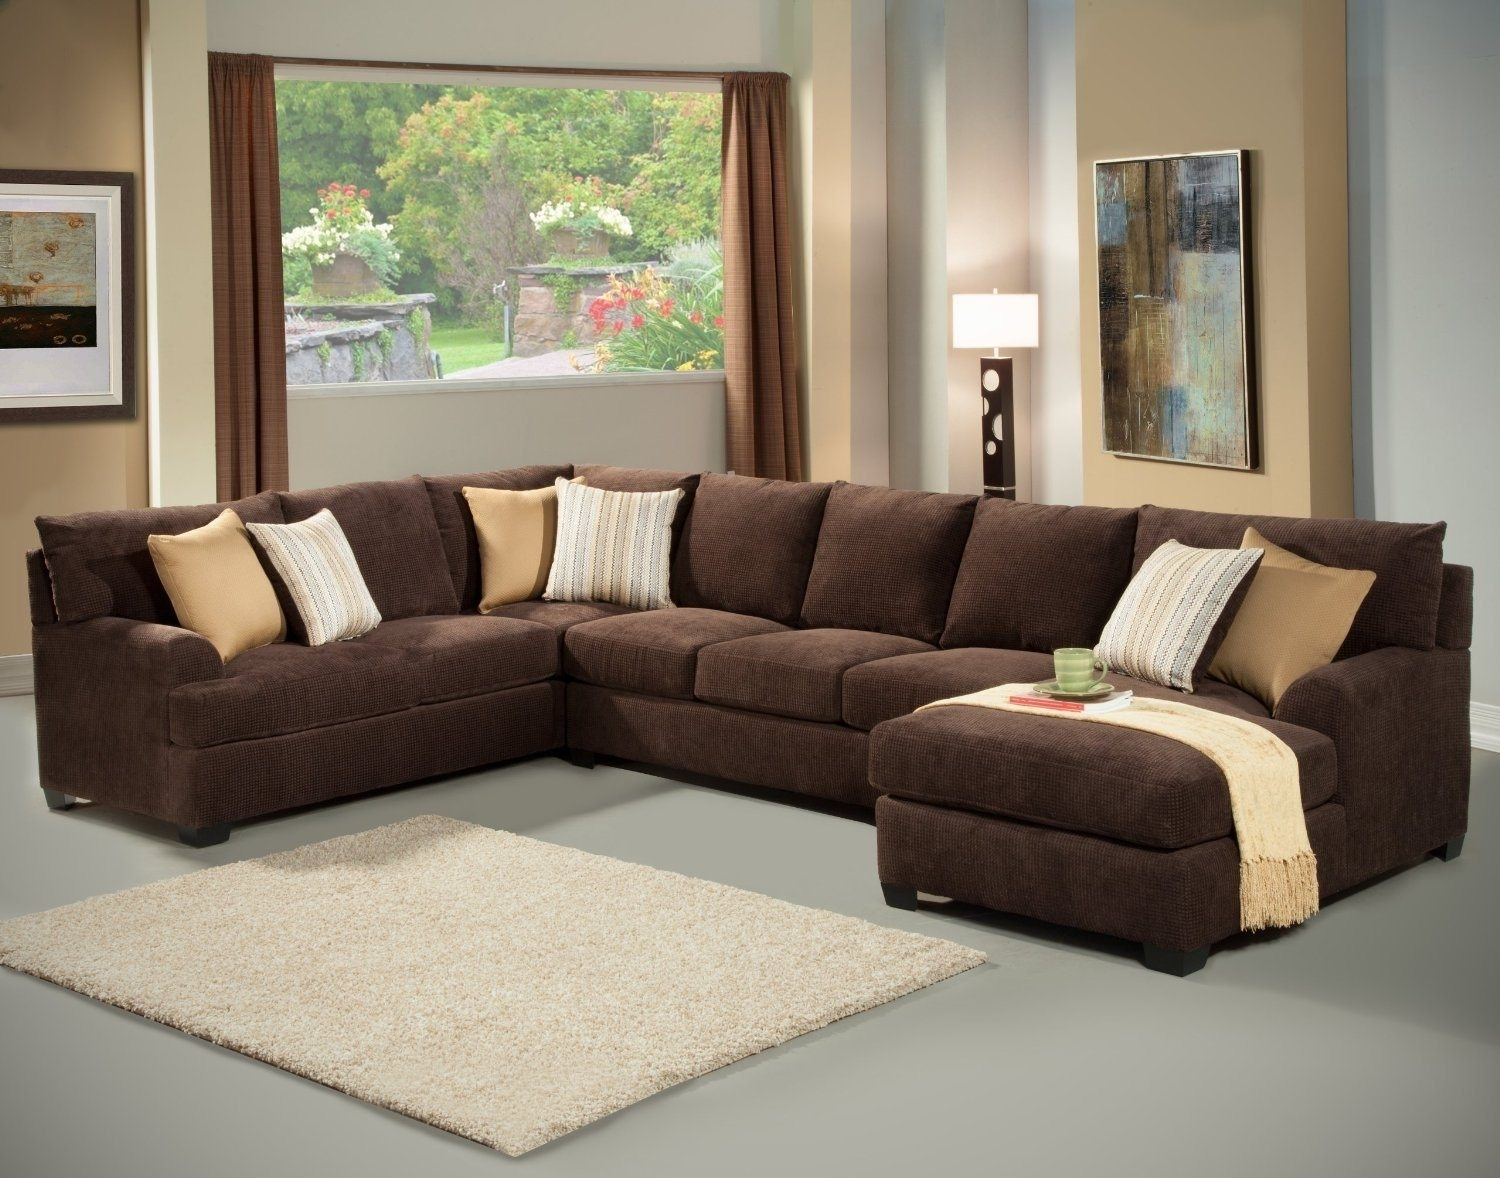 Furniture: American Freight Evansville | American Freight Tn In Evansville In Sectional Sofas (View 6 of 10)